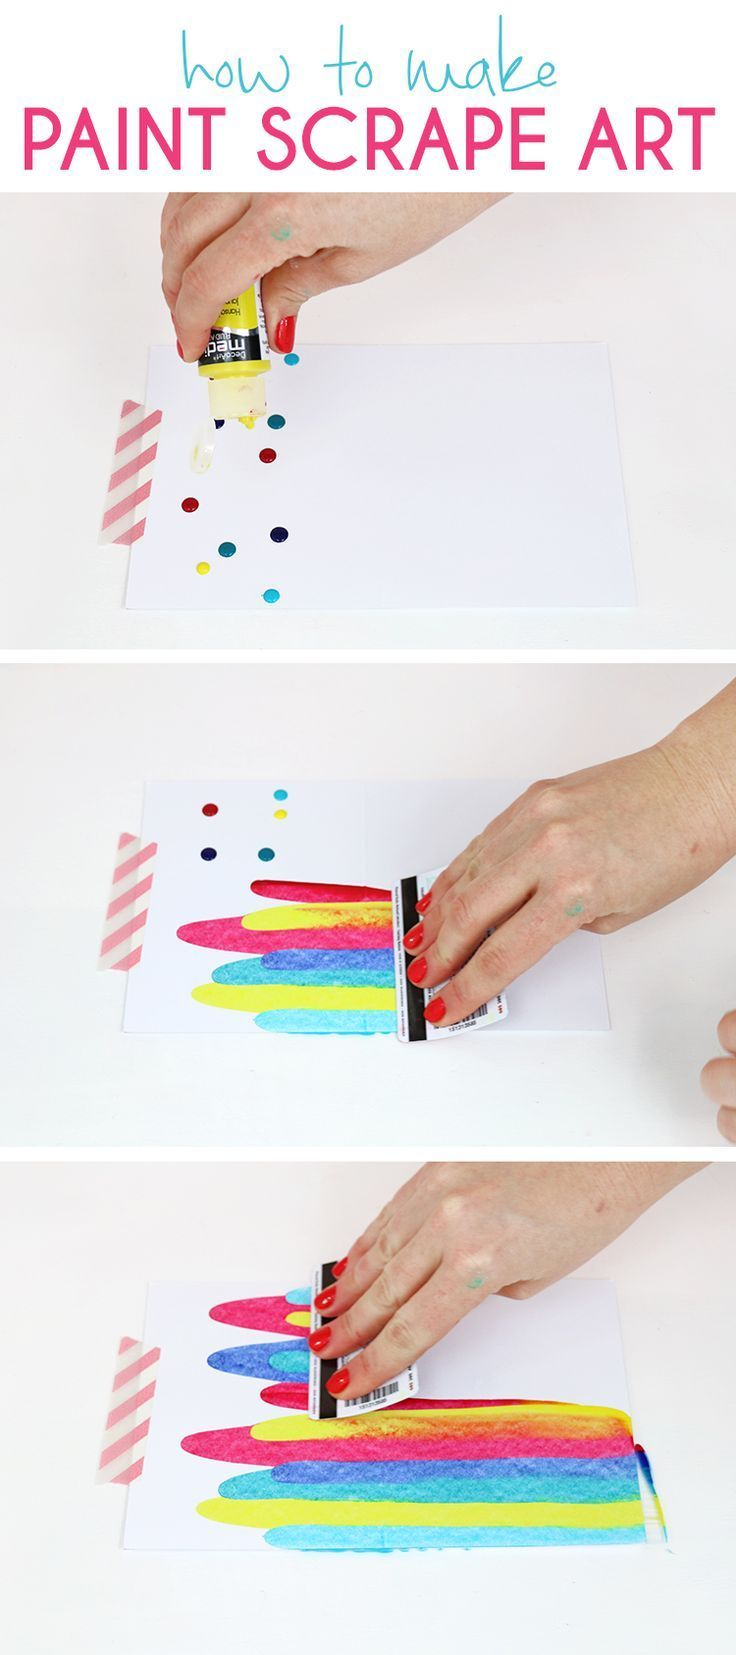 Paint scrape notecards diy art project idea diy art for How to make simple crafts at home